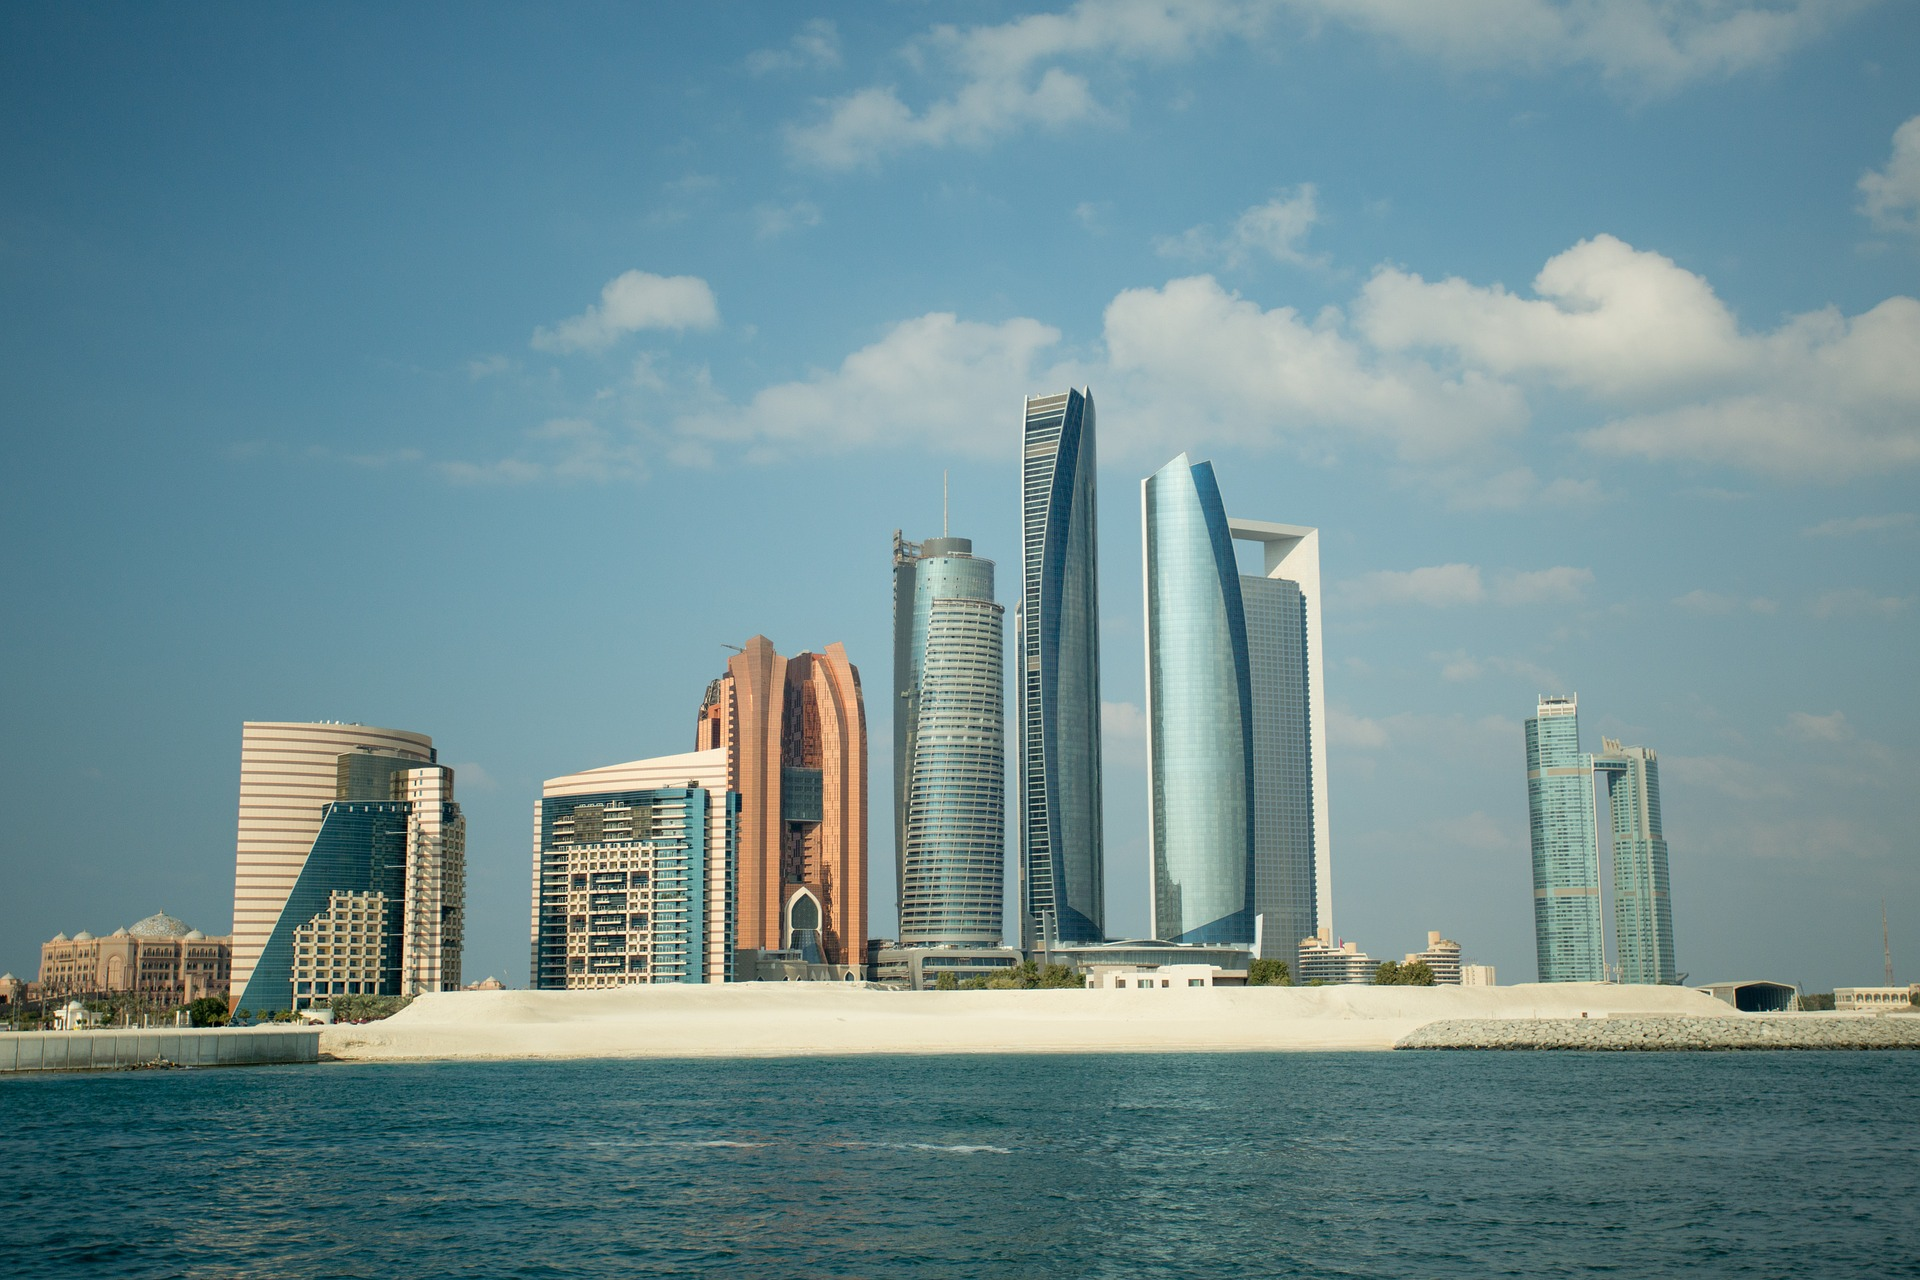 Establish your company and set up your dream business in Abu Dhabi